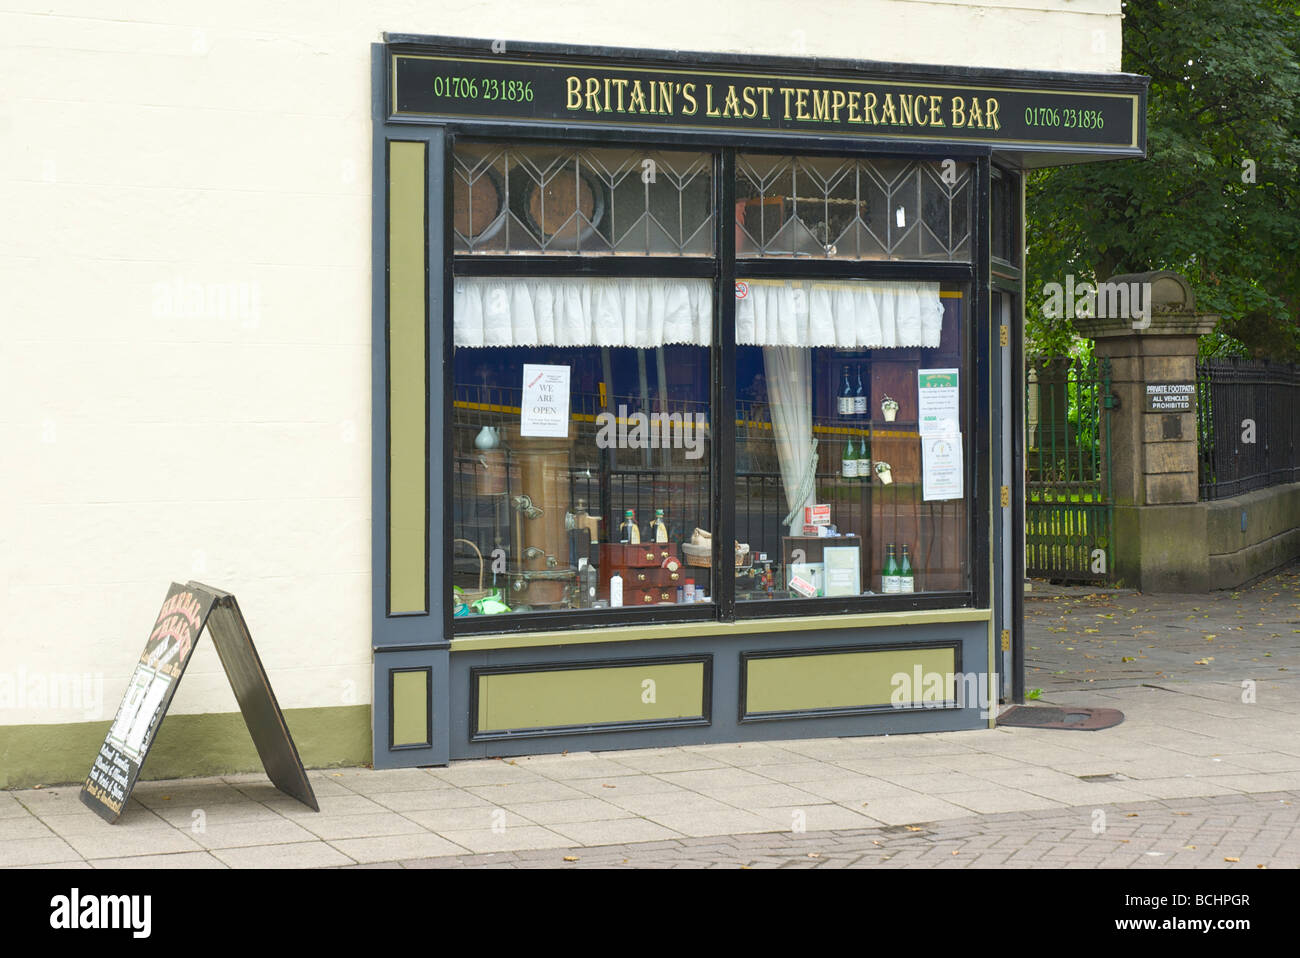 fitzpatricks-herbal-health-temperance-bar-rawtenstall-lancashire-england-BCHPGR.jpg